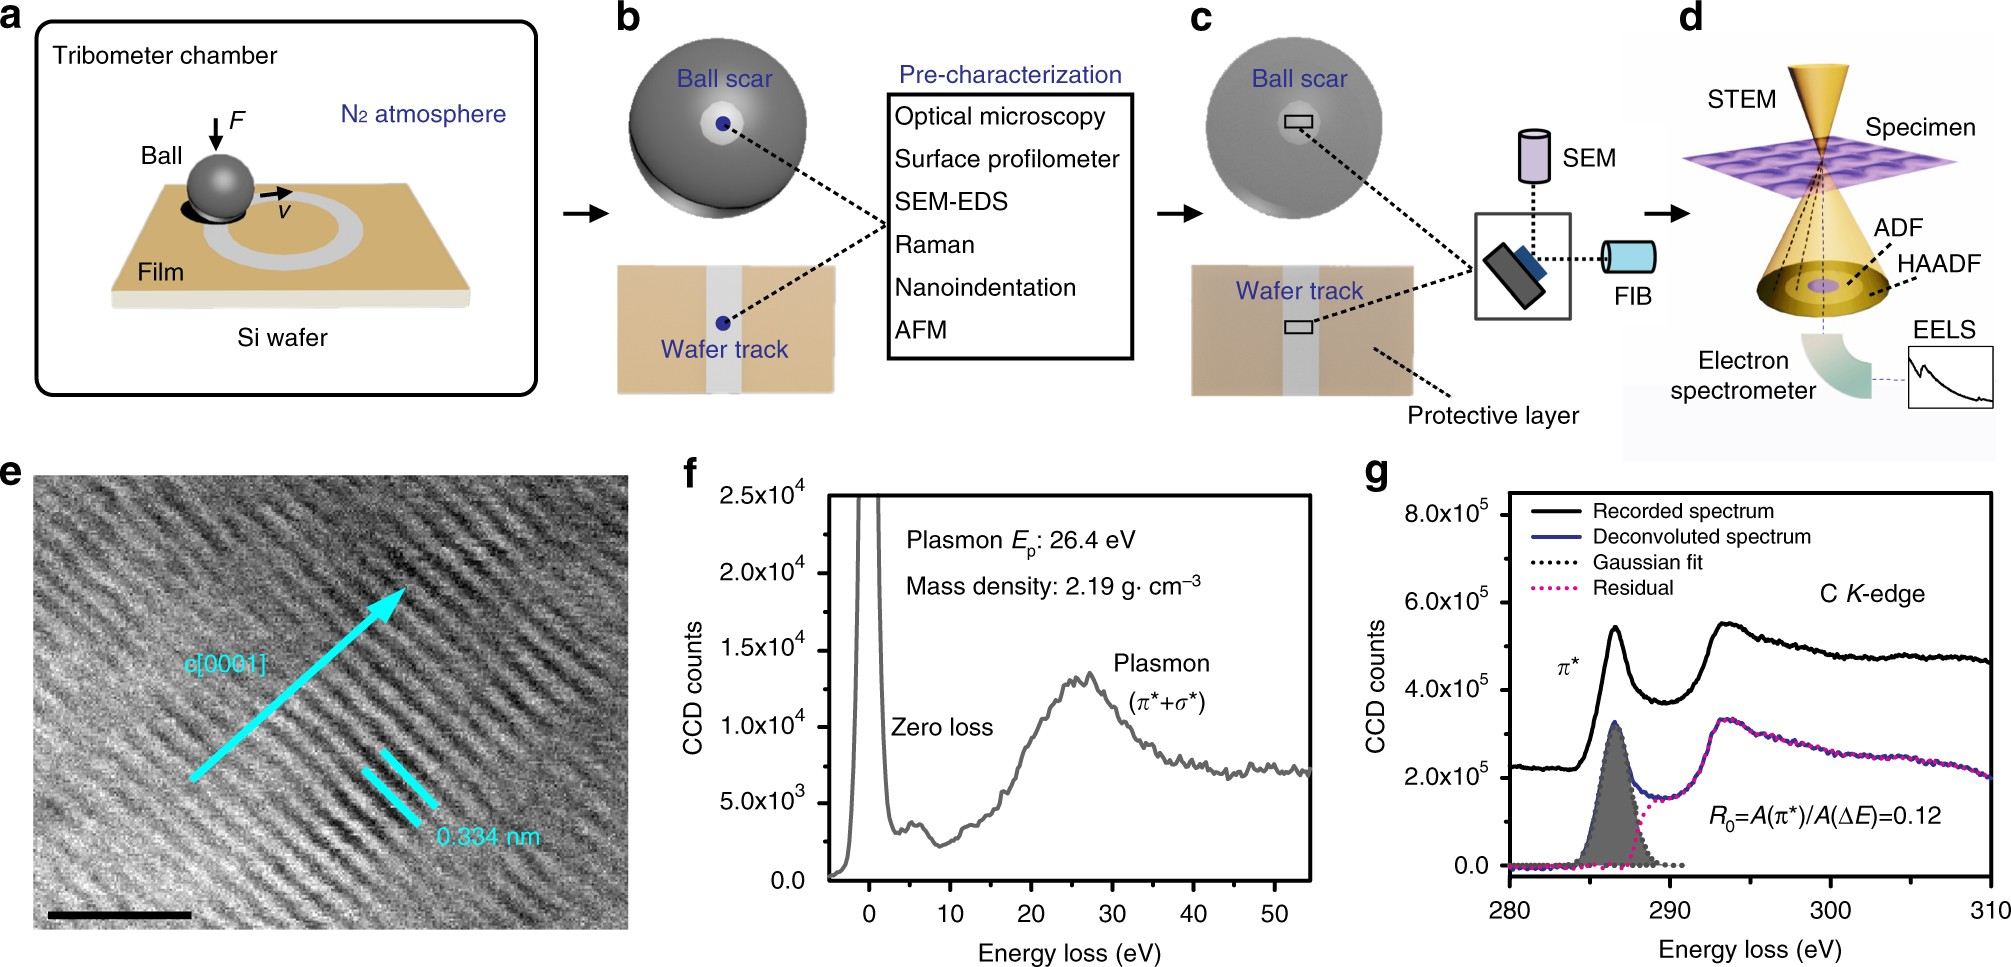 Evolution Of Tribo Induced Interfacial Nanostructures Governing Plasma Ball Driver Schematic Superlubricity In A Ch And Chsi Films Nature Communications